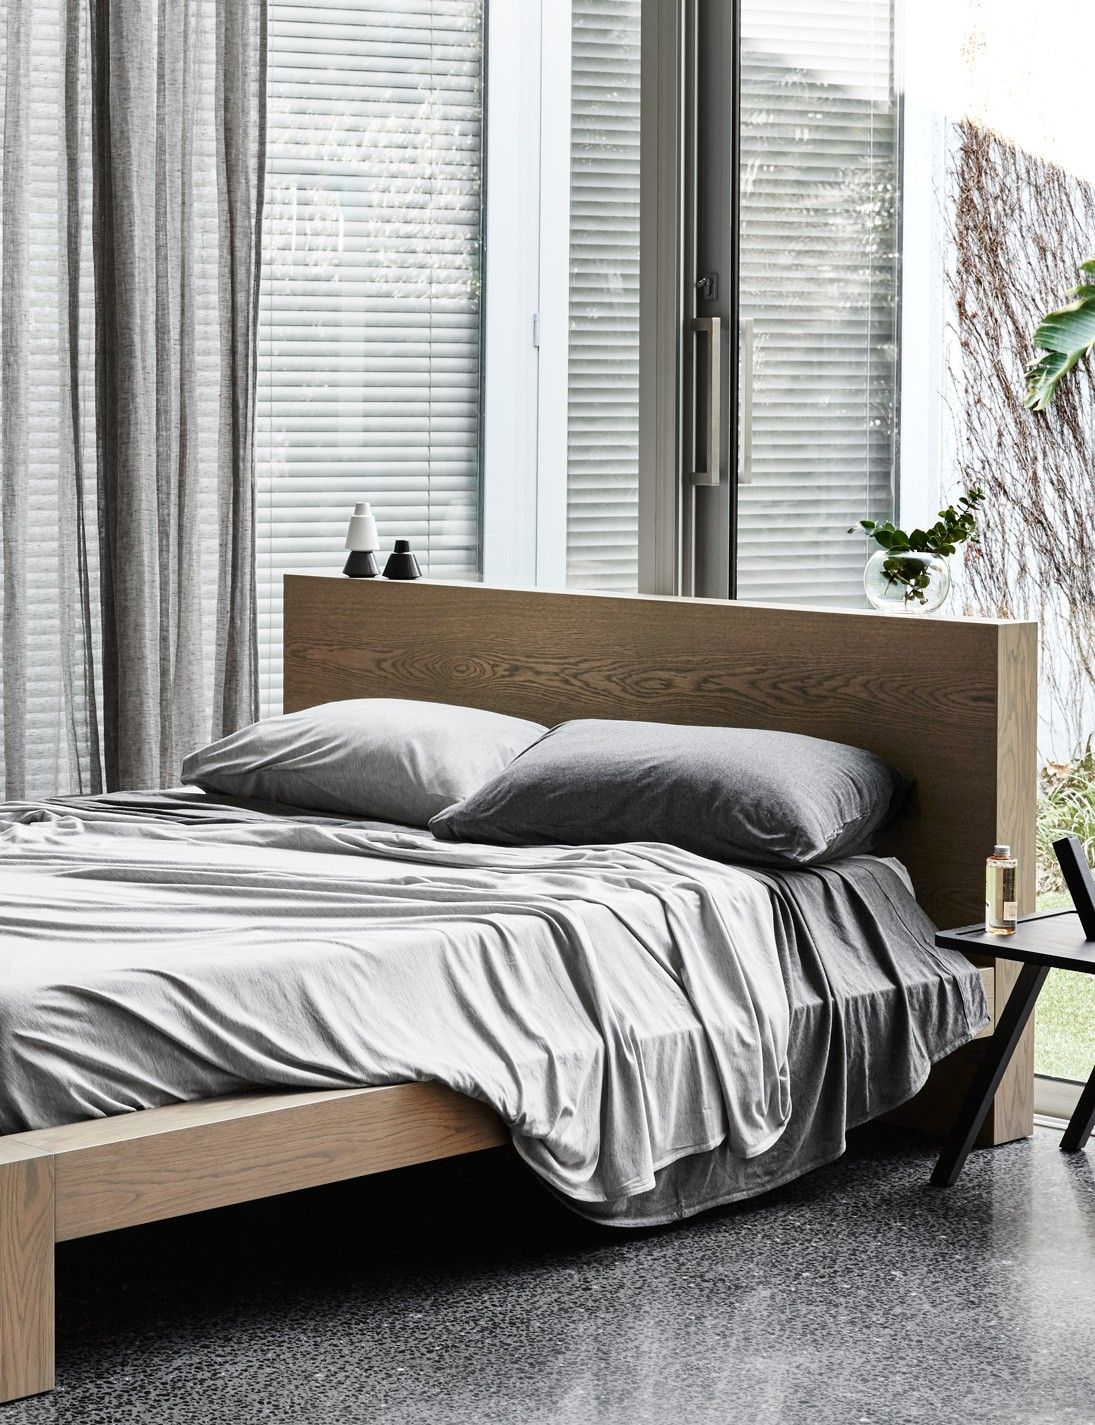 Studio Jersey Cotton Bed Linen From Abode Living Are The Sheets For You.